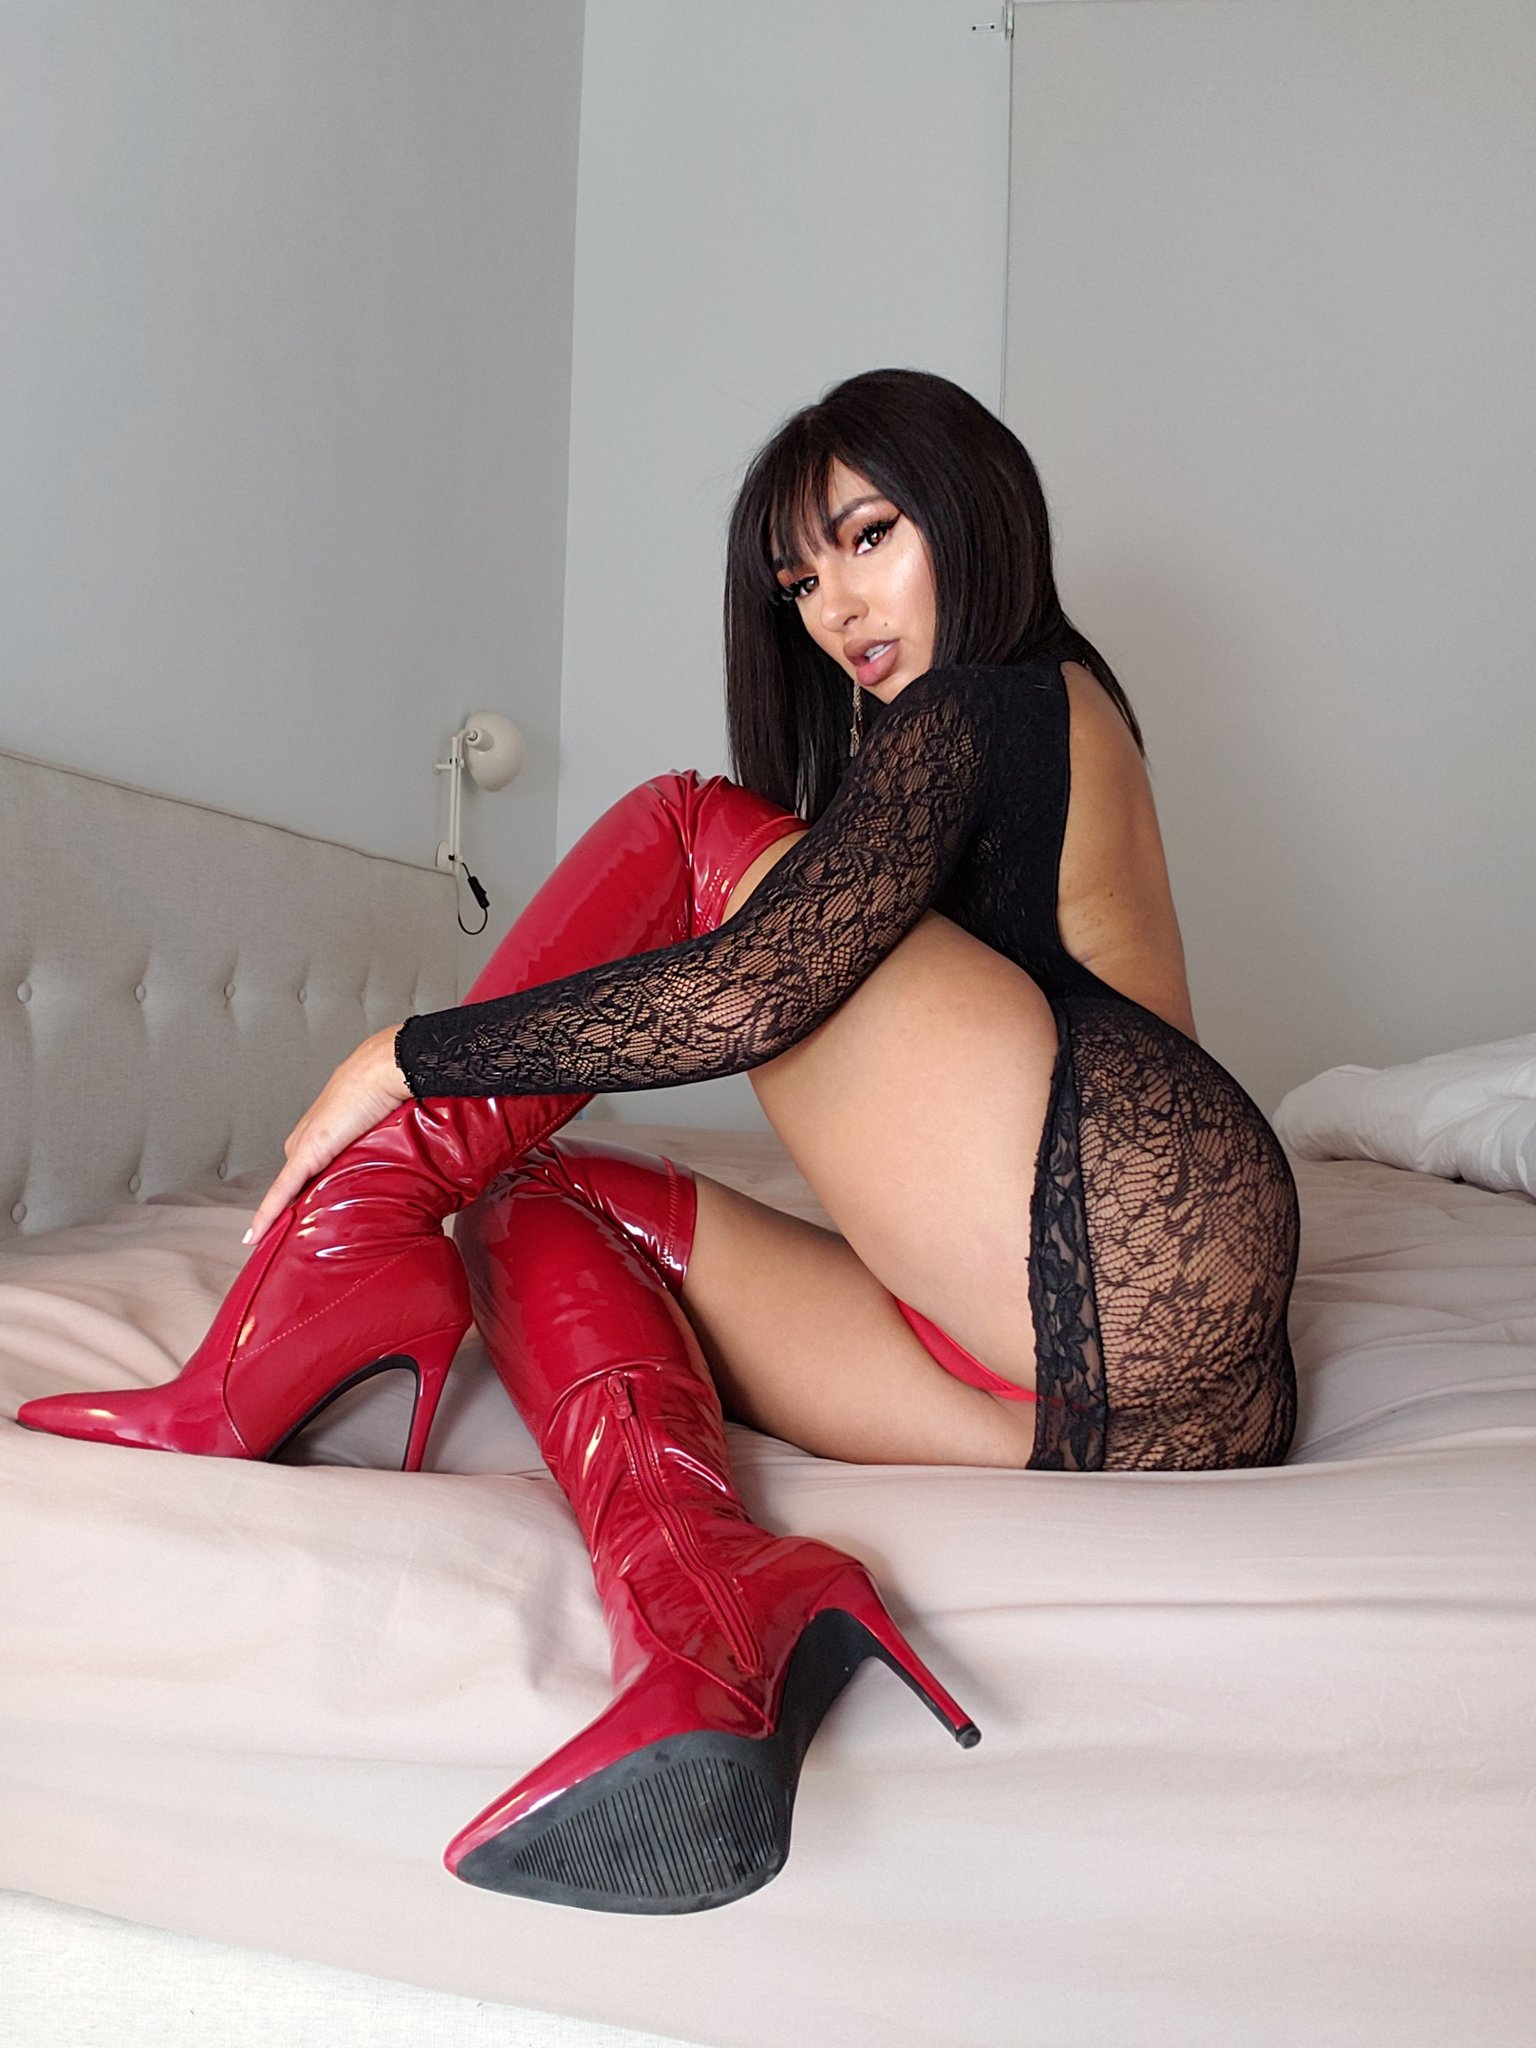 Love me in RED? ��  Chat with me - https://t.co/S5PbCsB9yu https://t.co/CoEmkTRaSb